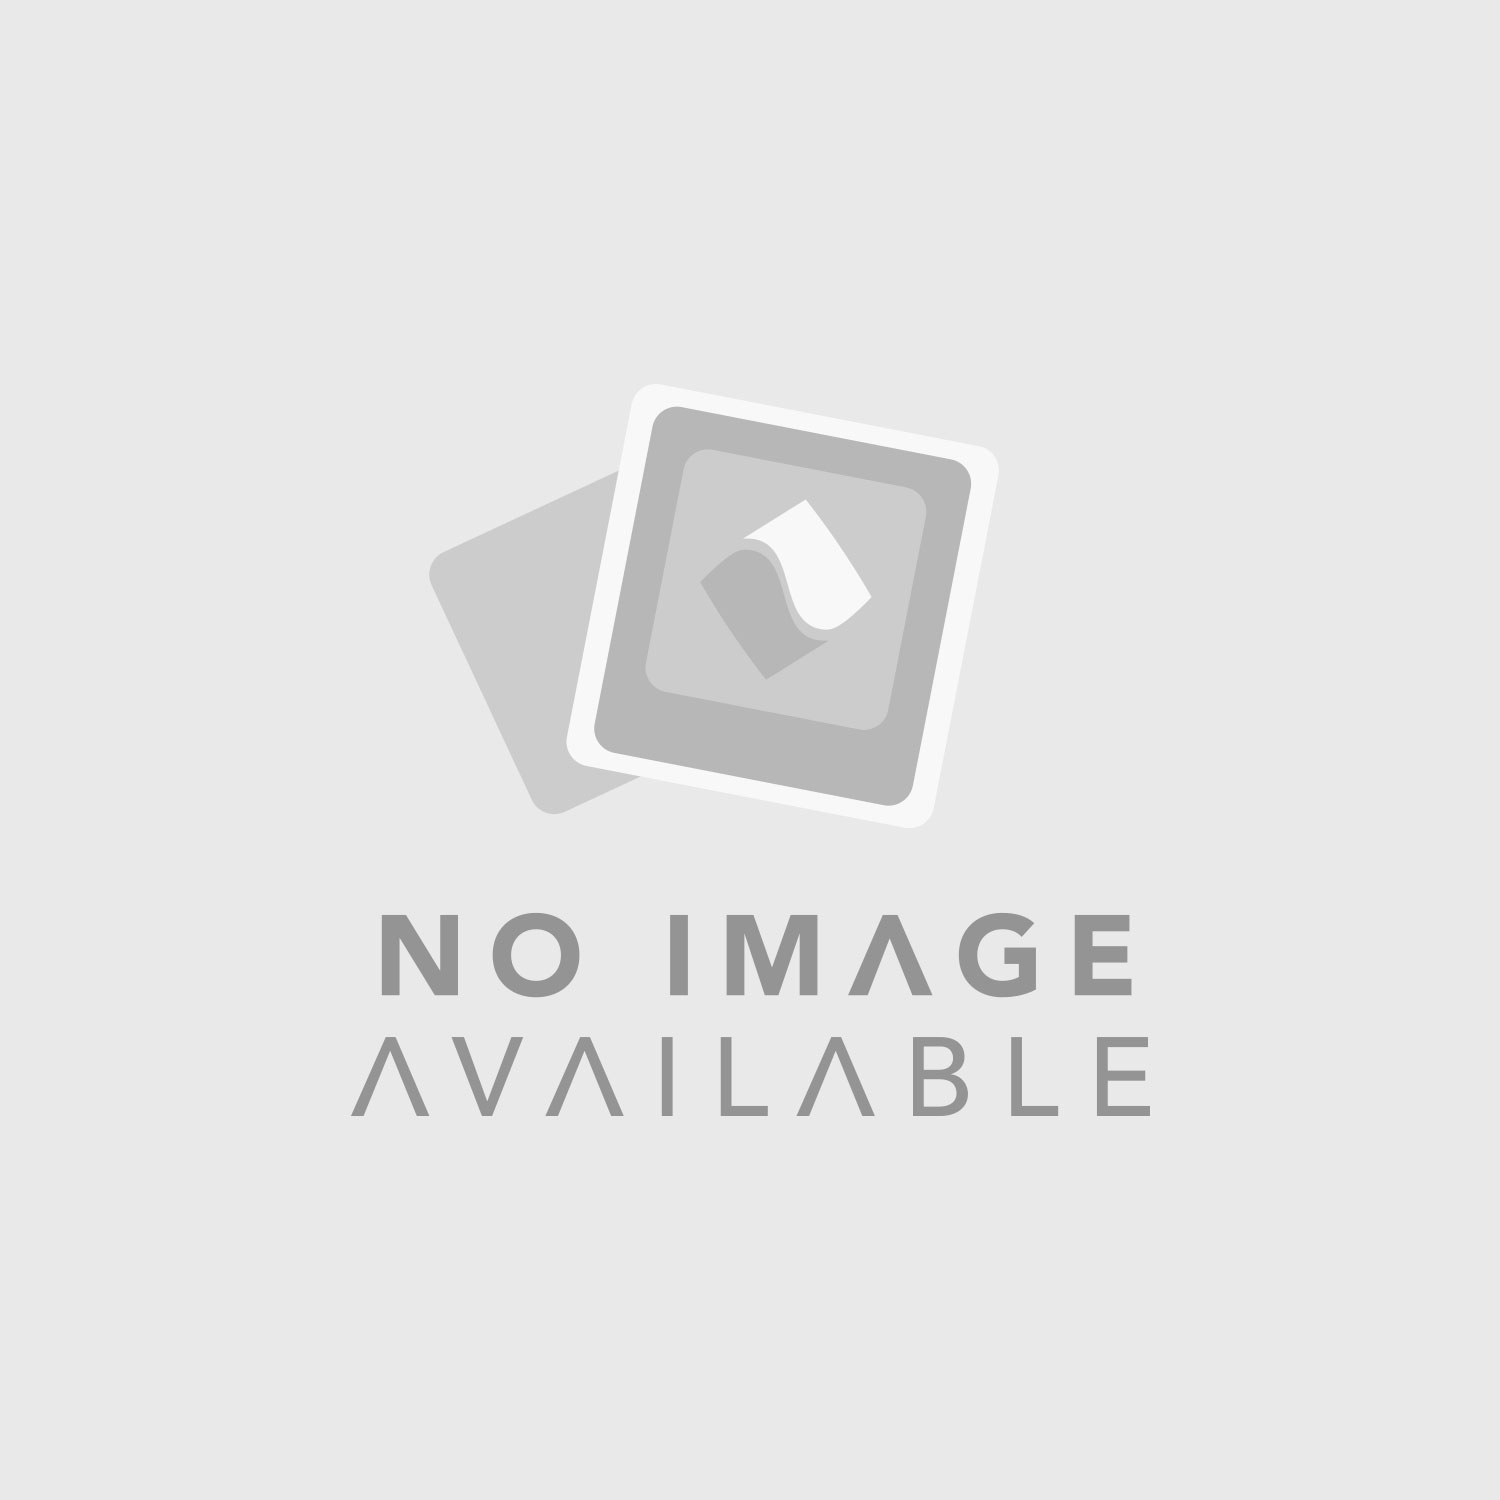 "Lectrosonics 26312 Thread Adapter, 1/2"" Diameter, 1 3/4"" Long, 3/8""-16 and 1/4""-20 Threads"